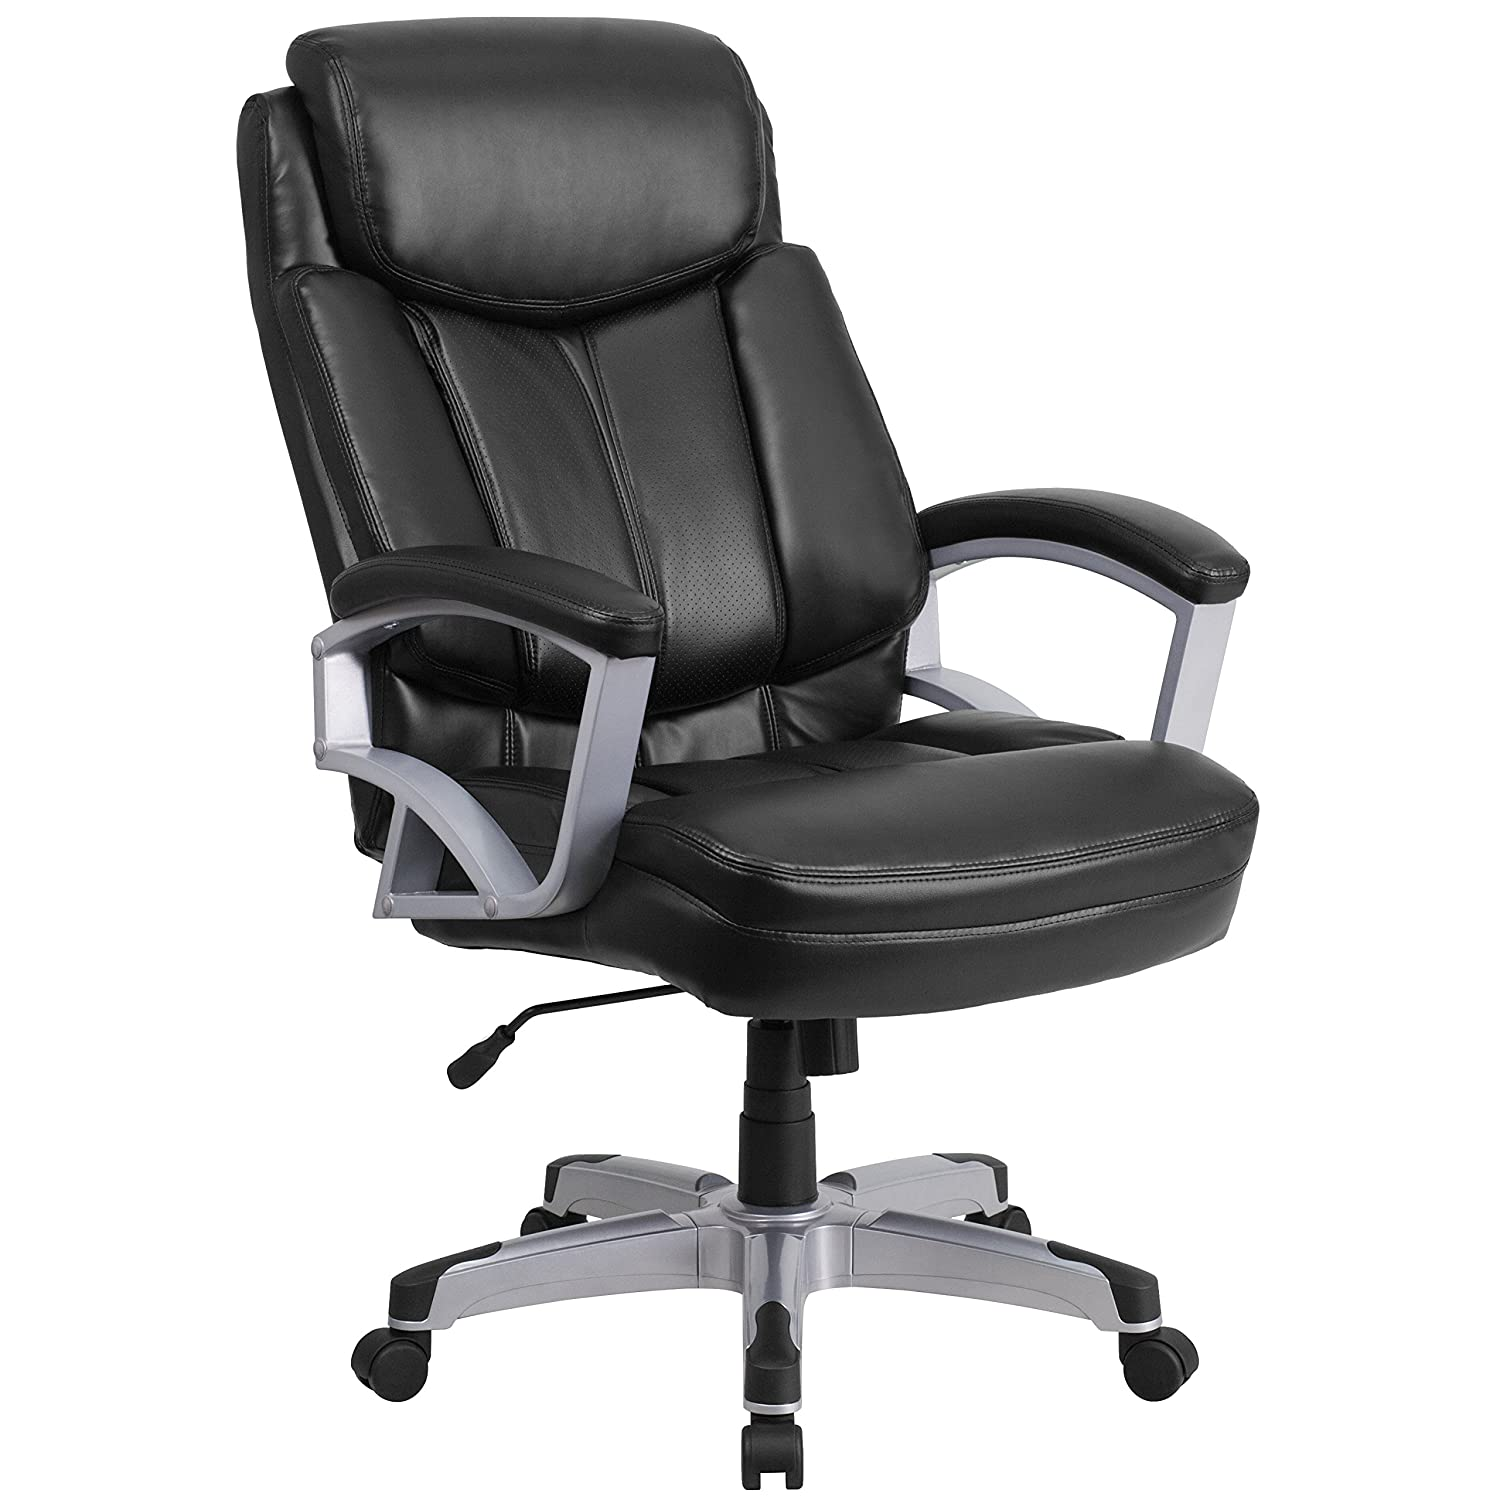 HERCULES Series Ergonomic Office Chair bY Flash Furniture